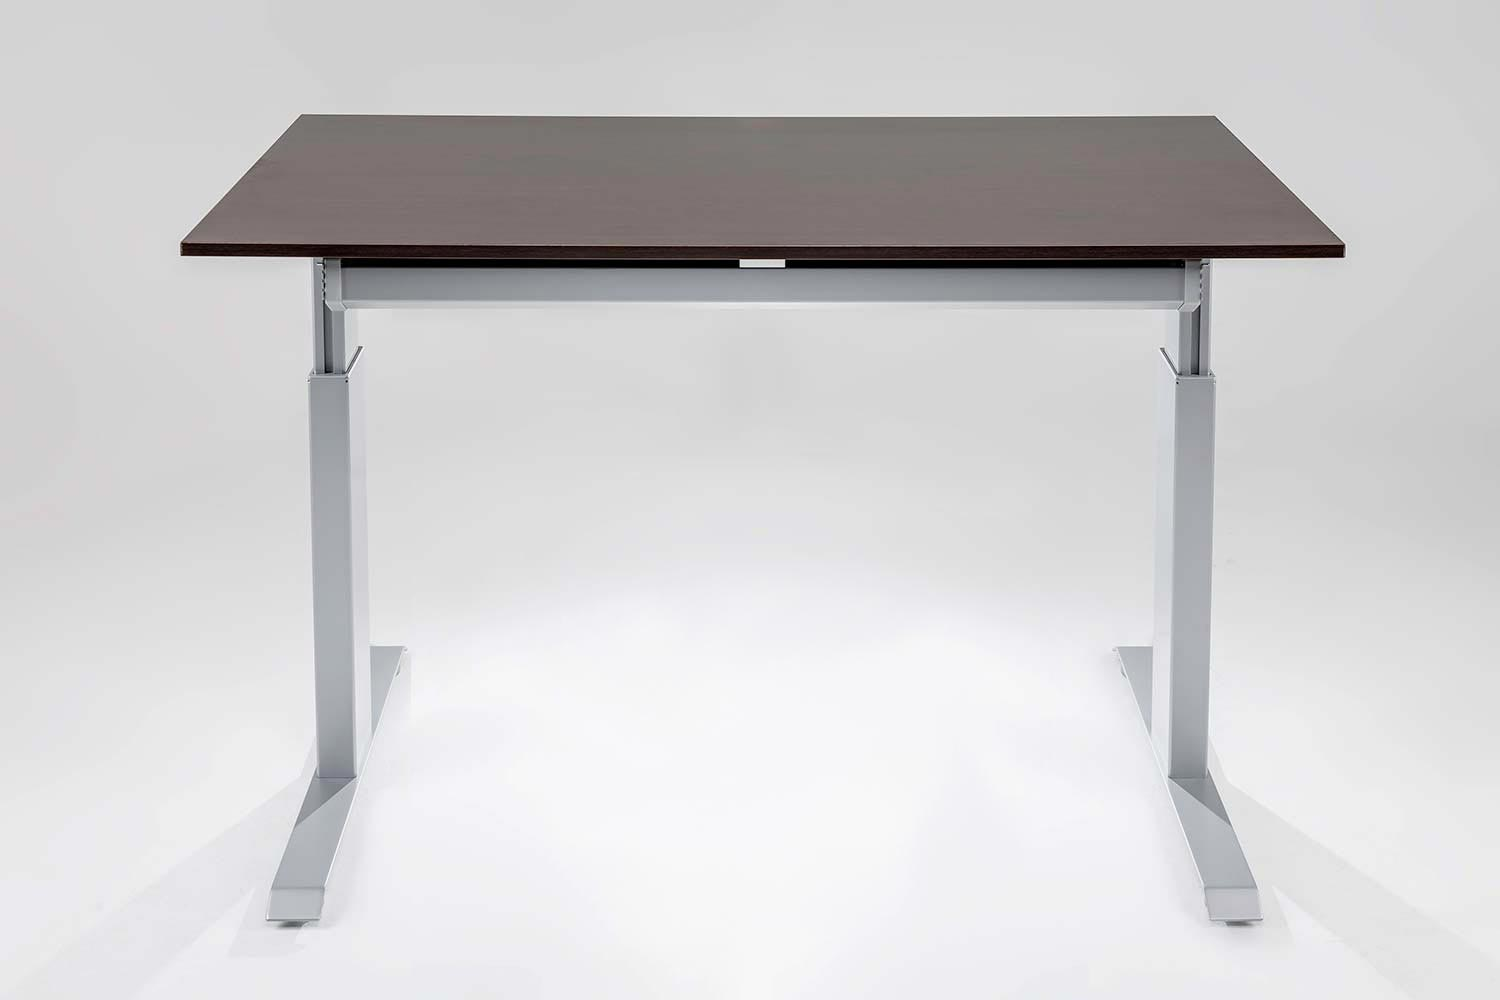 Standing Desk Large Cable Management Tray | MultiTable